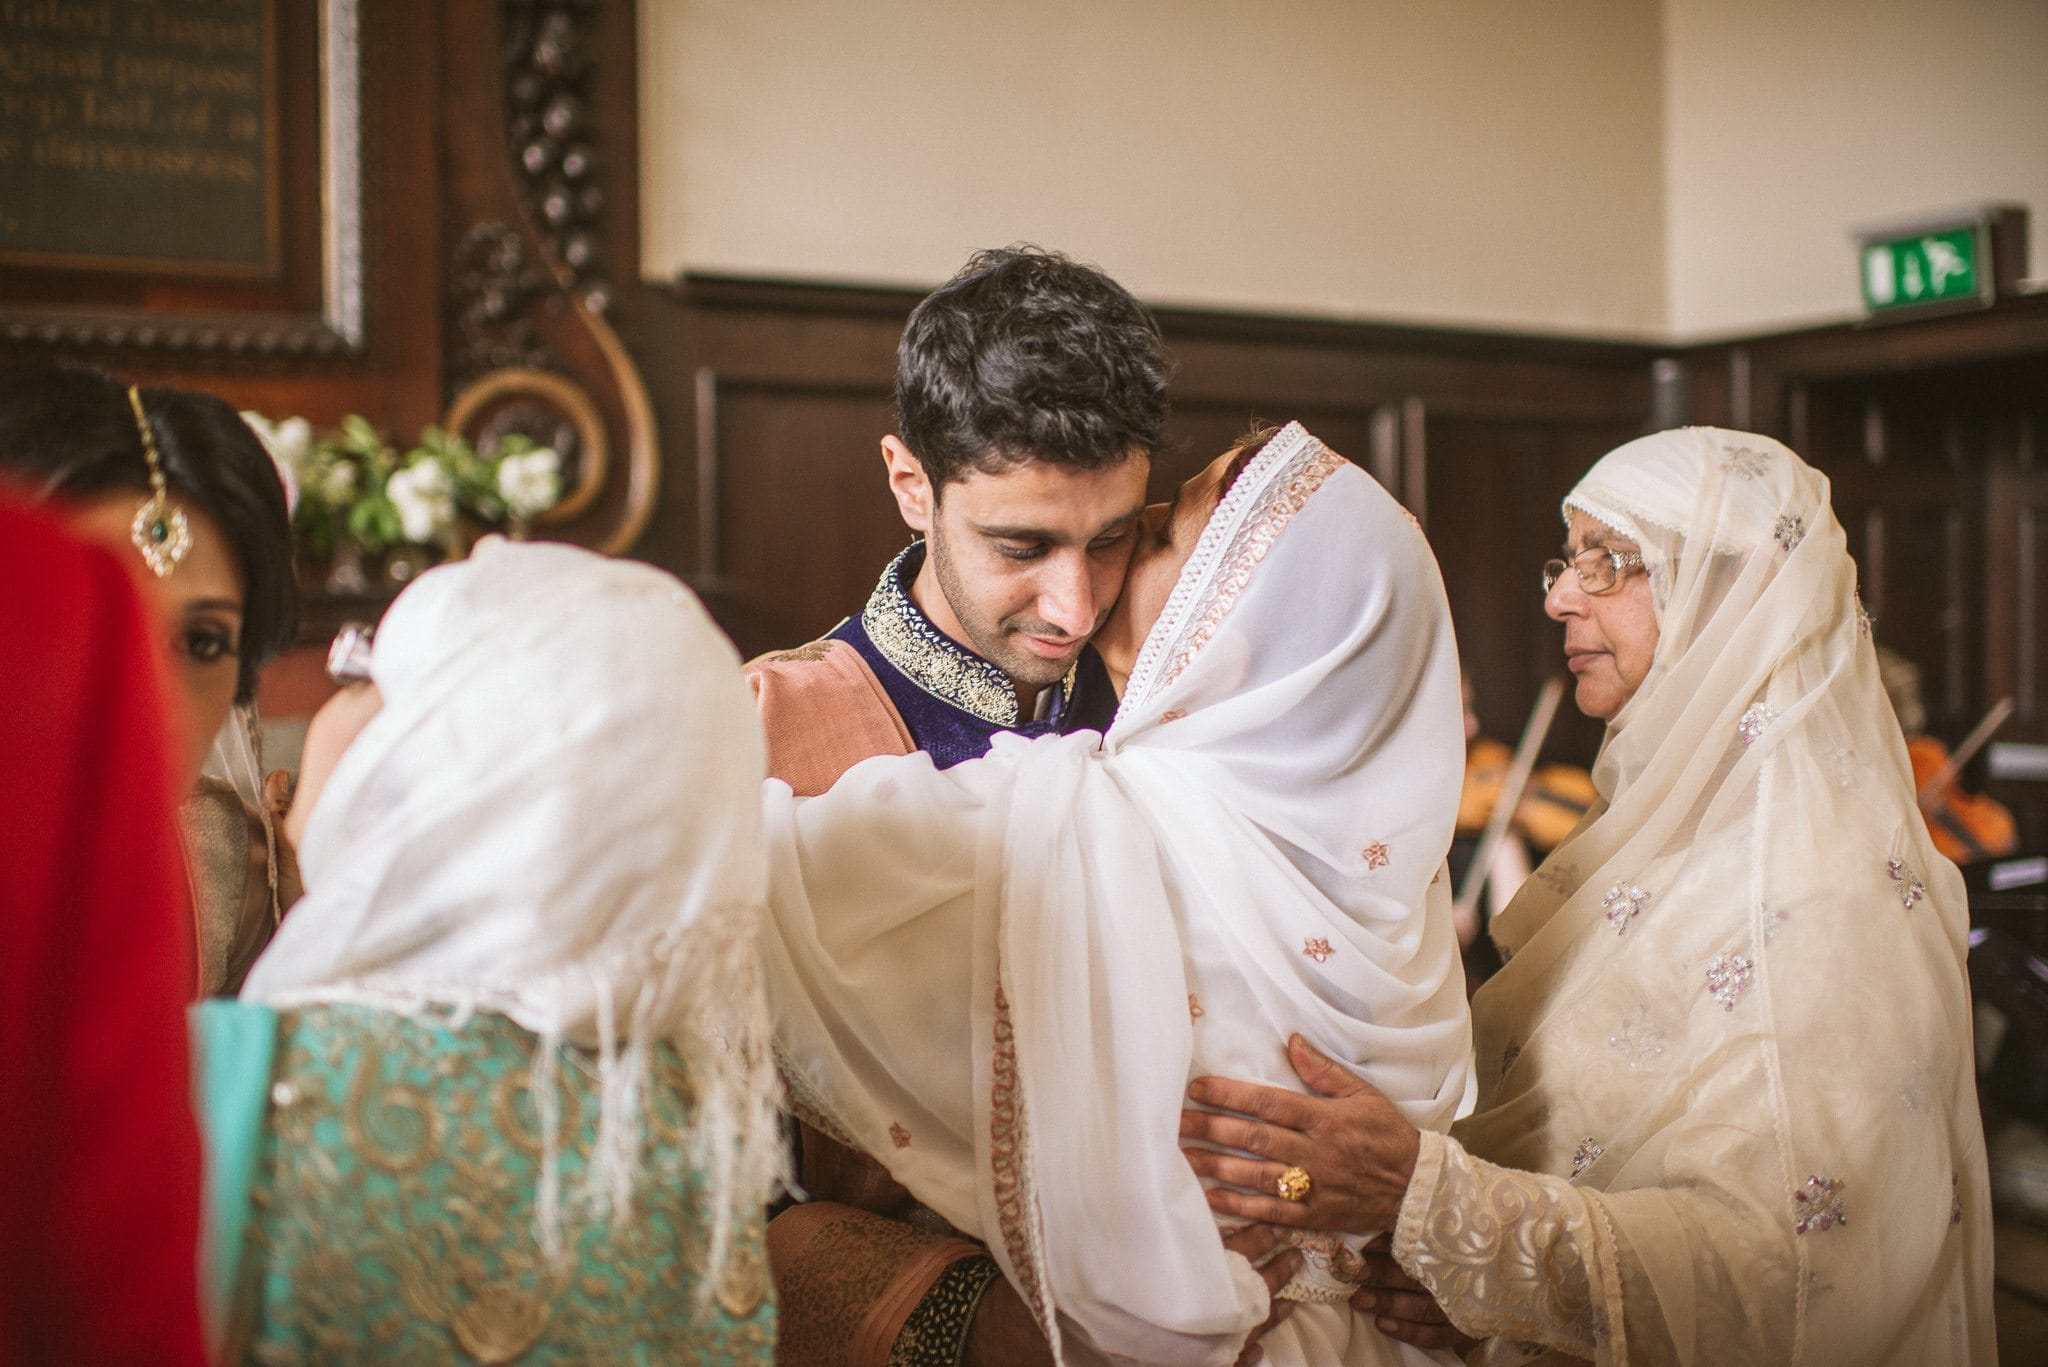 Usman is hugged by a female guest after his wedding ceremony